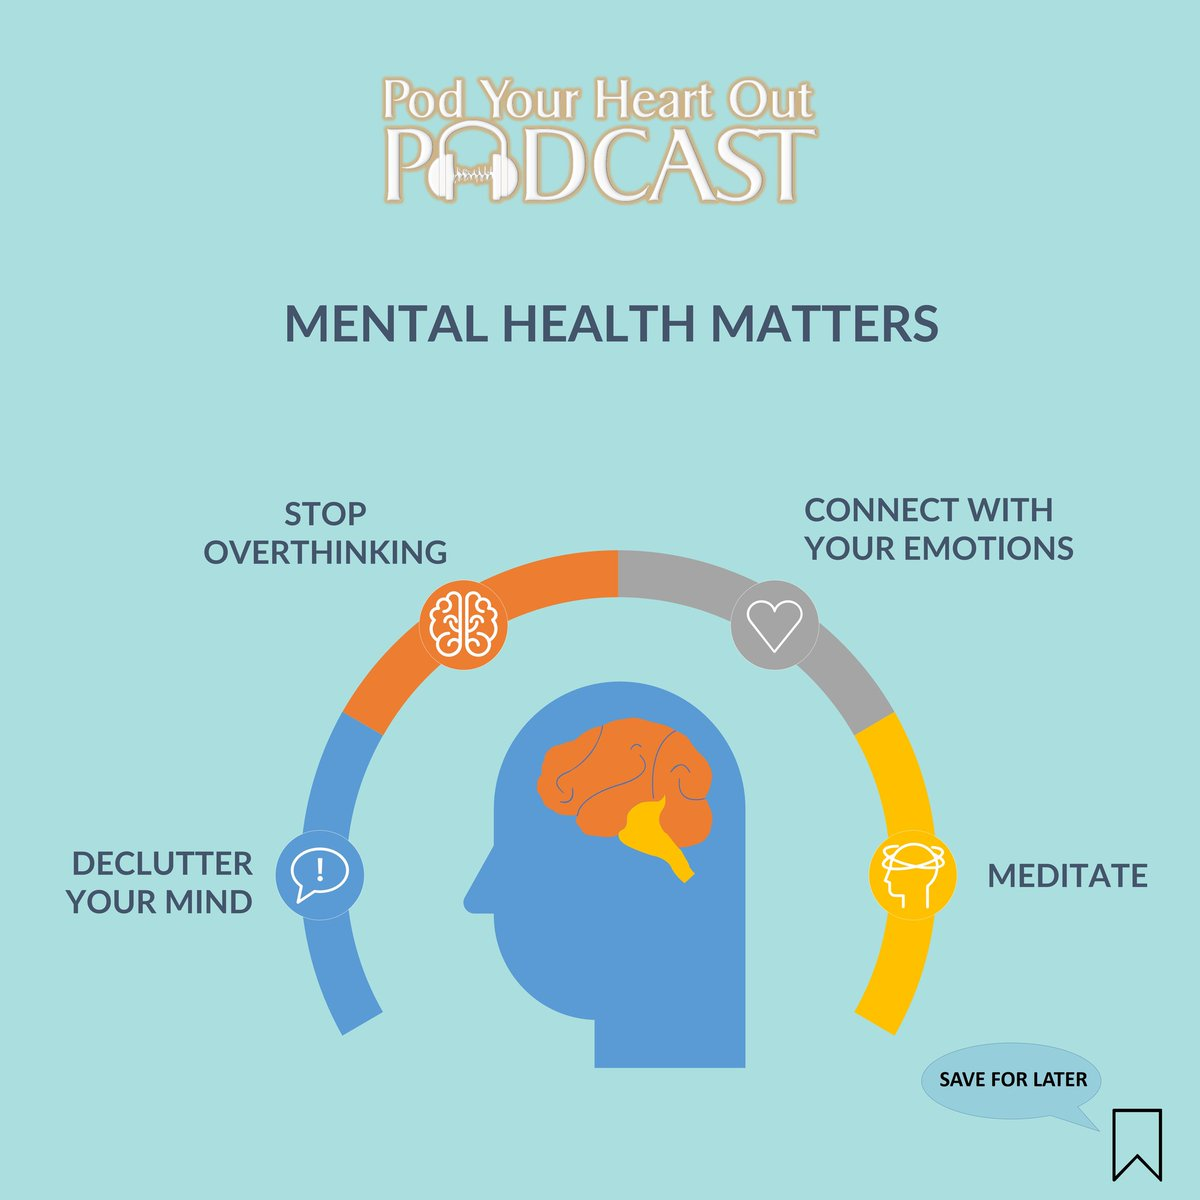 #PodYourHeartOut podcast tips for keeping your mental health in check. https://t.co/z4B1kQEnAx